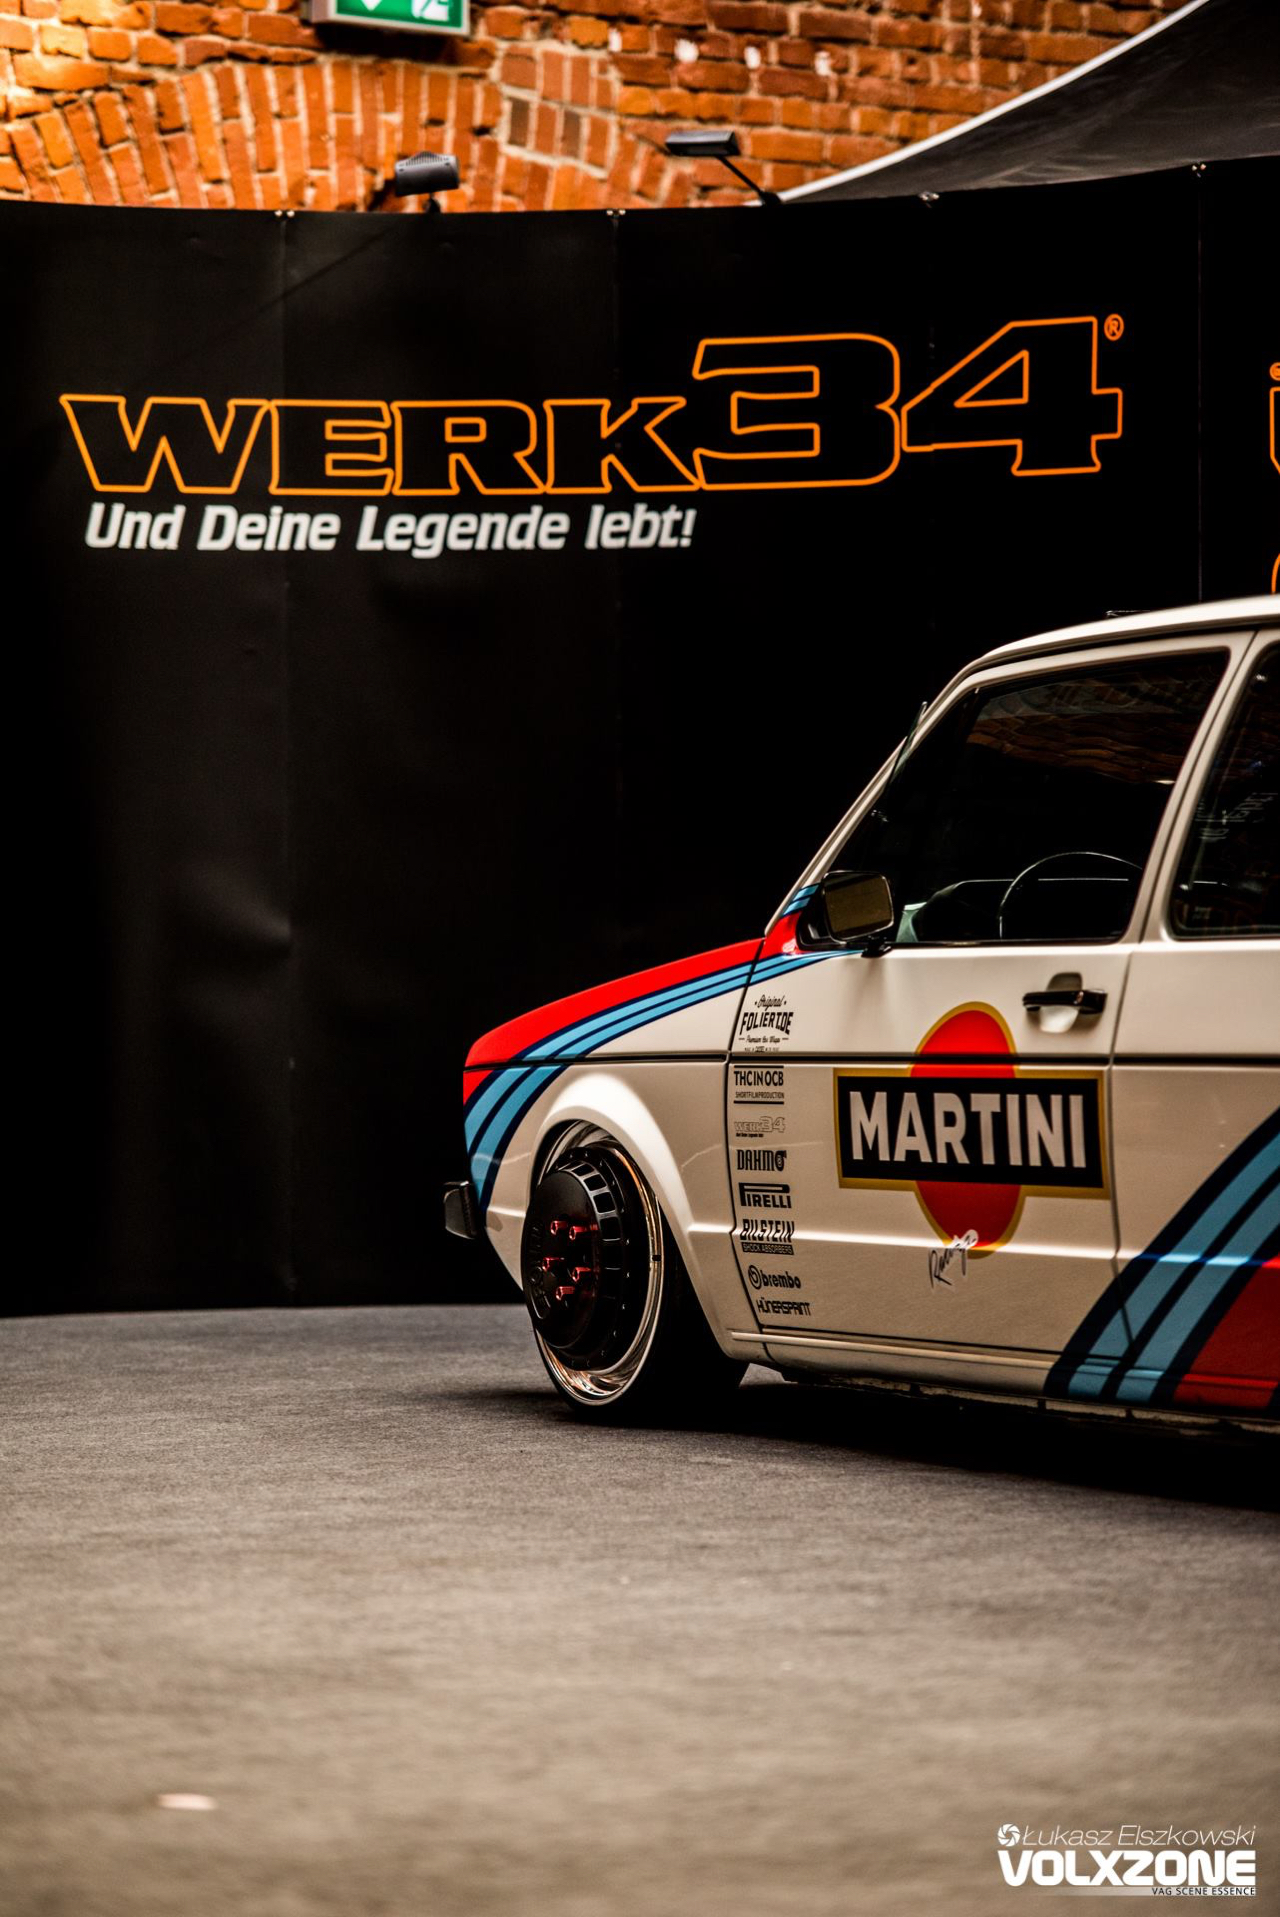 VW Golf 1 : Un p'tit coup de Martini ? 29